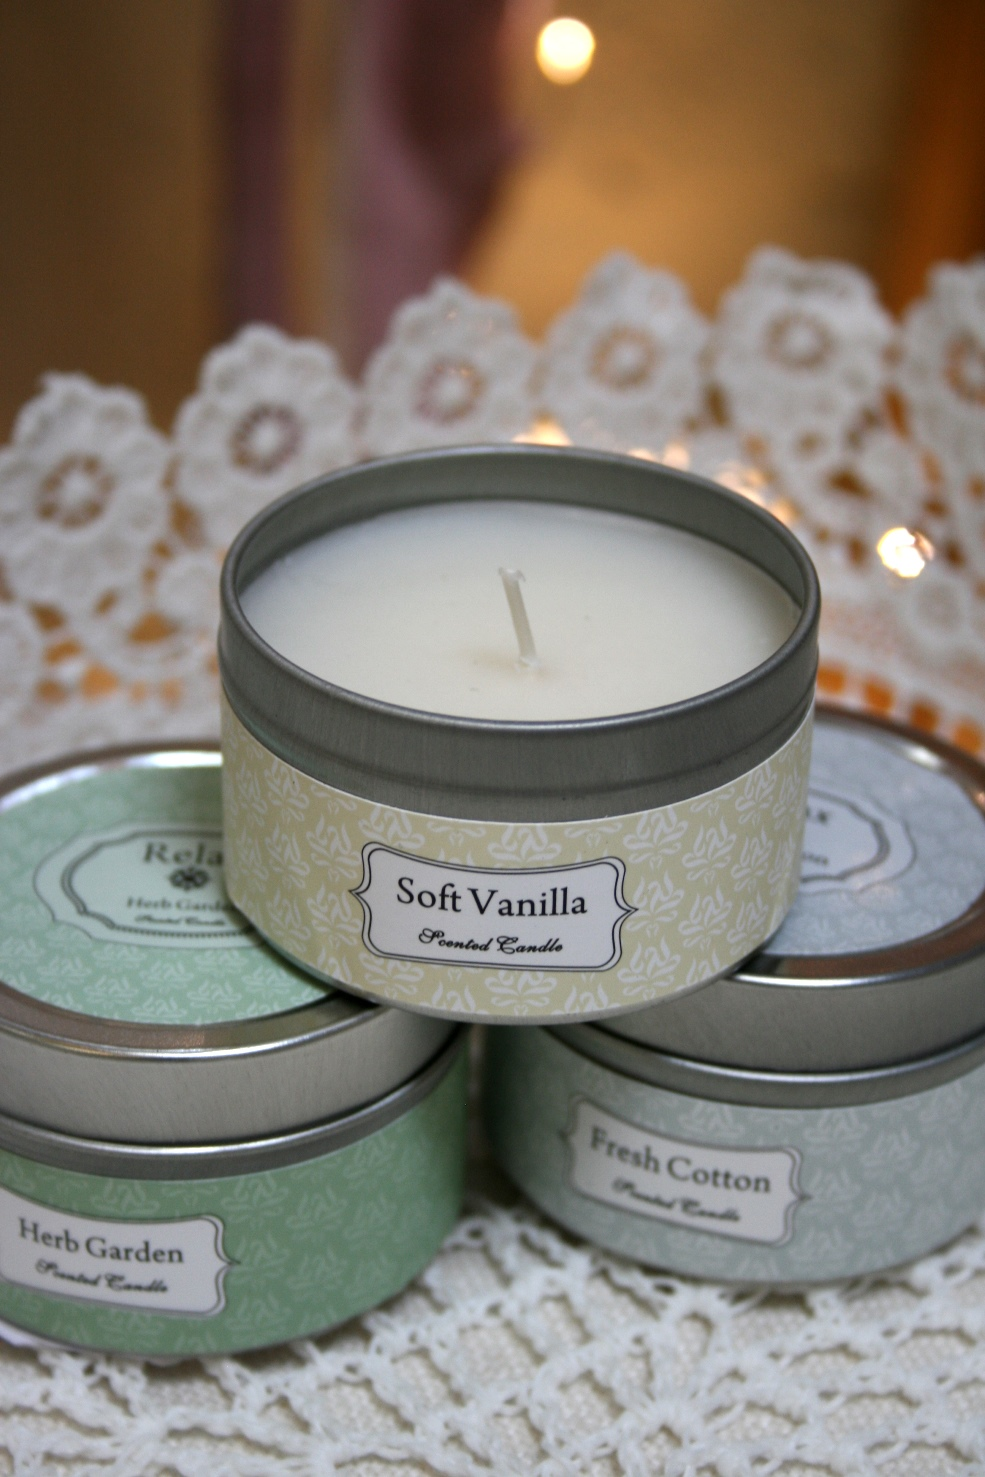 Scented Candles - €2.75 each  Lace Basket - €8.00